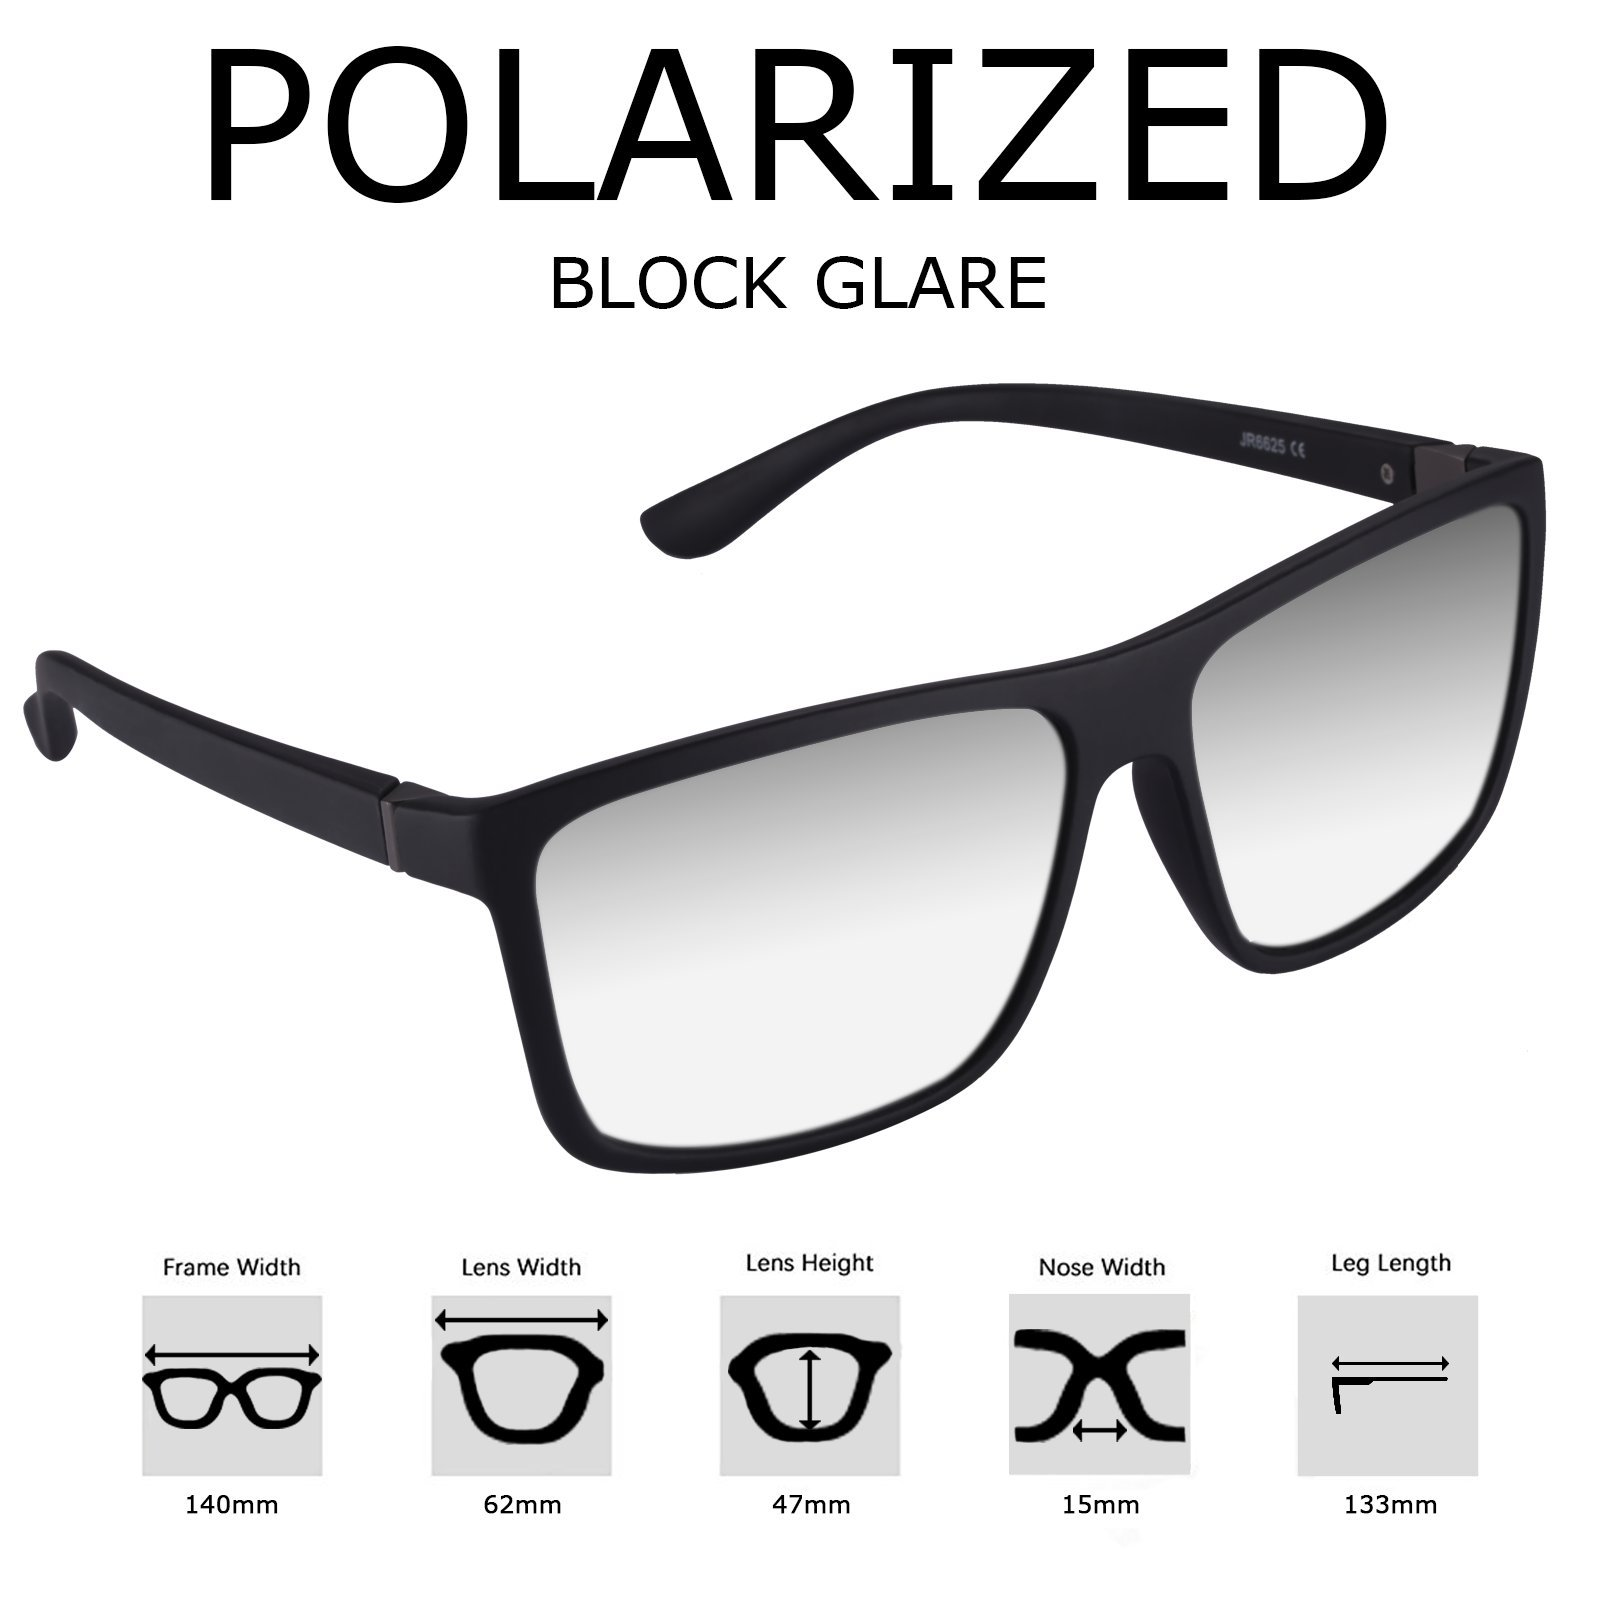 Polarized Sunglasses for Men Driving, Unisex Sun Glasses Square Vintage 100% UV Protection Glasses for Men/Women (Sliver)